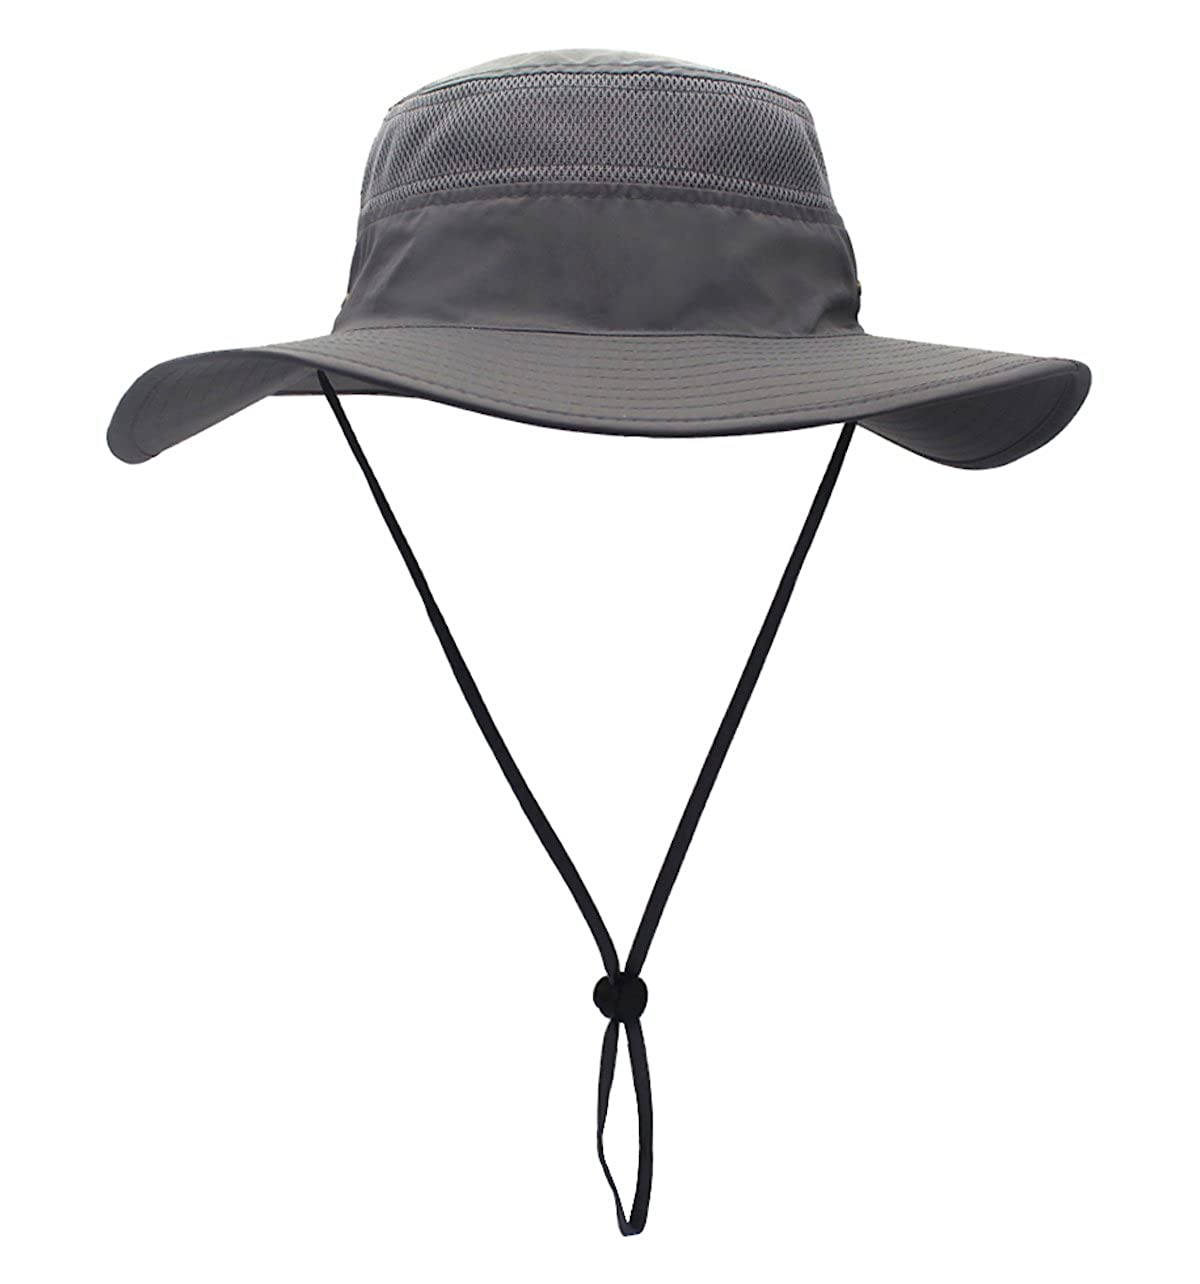 Home Prefer Men's Sun Hat UPF 50+ Wide Brim Bucket Hat Windproof Fishing Hats